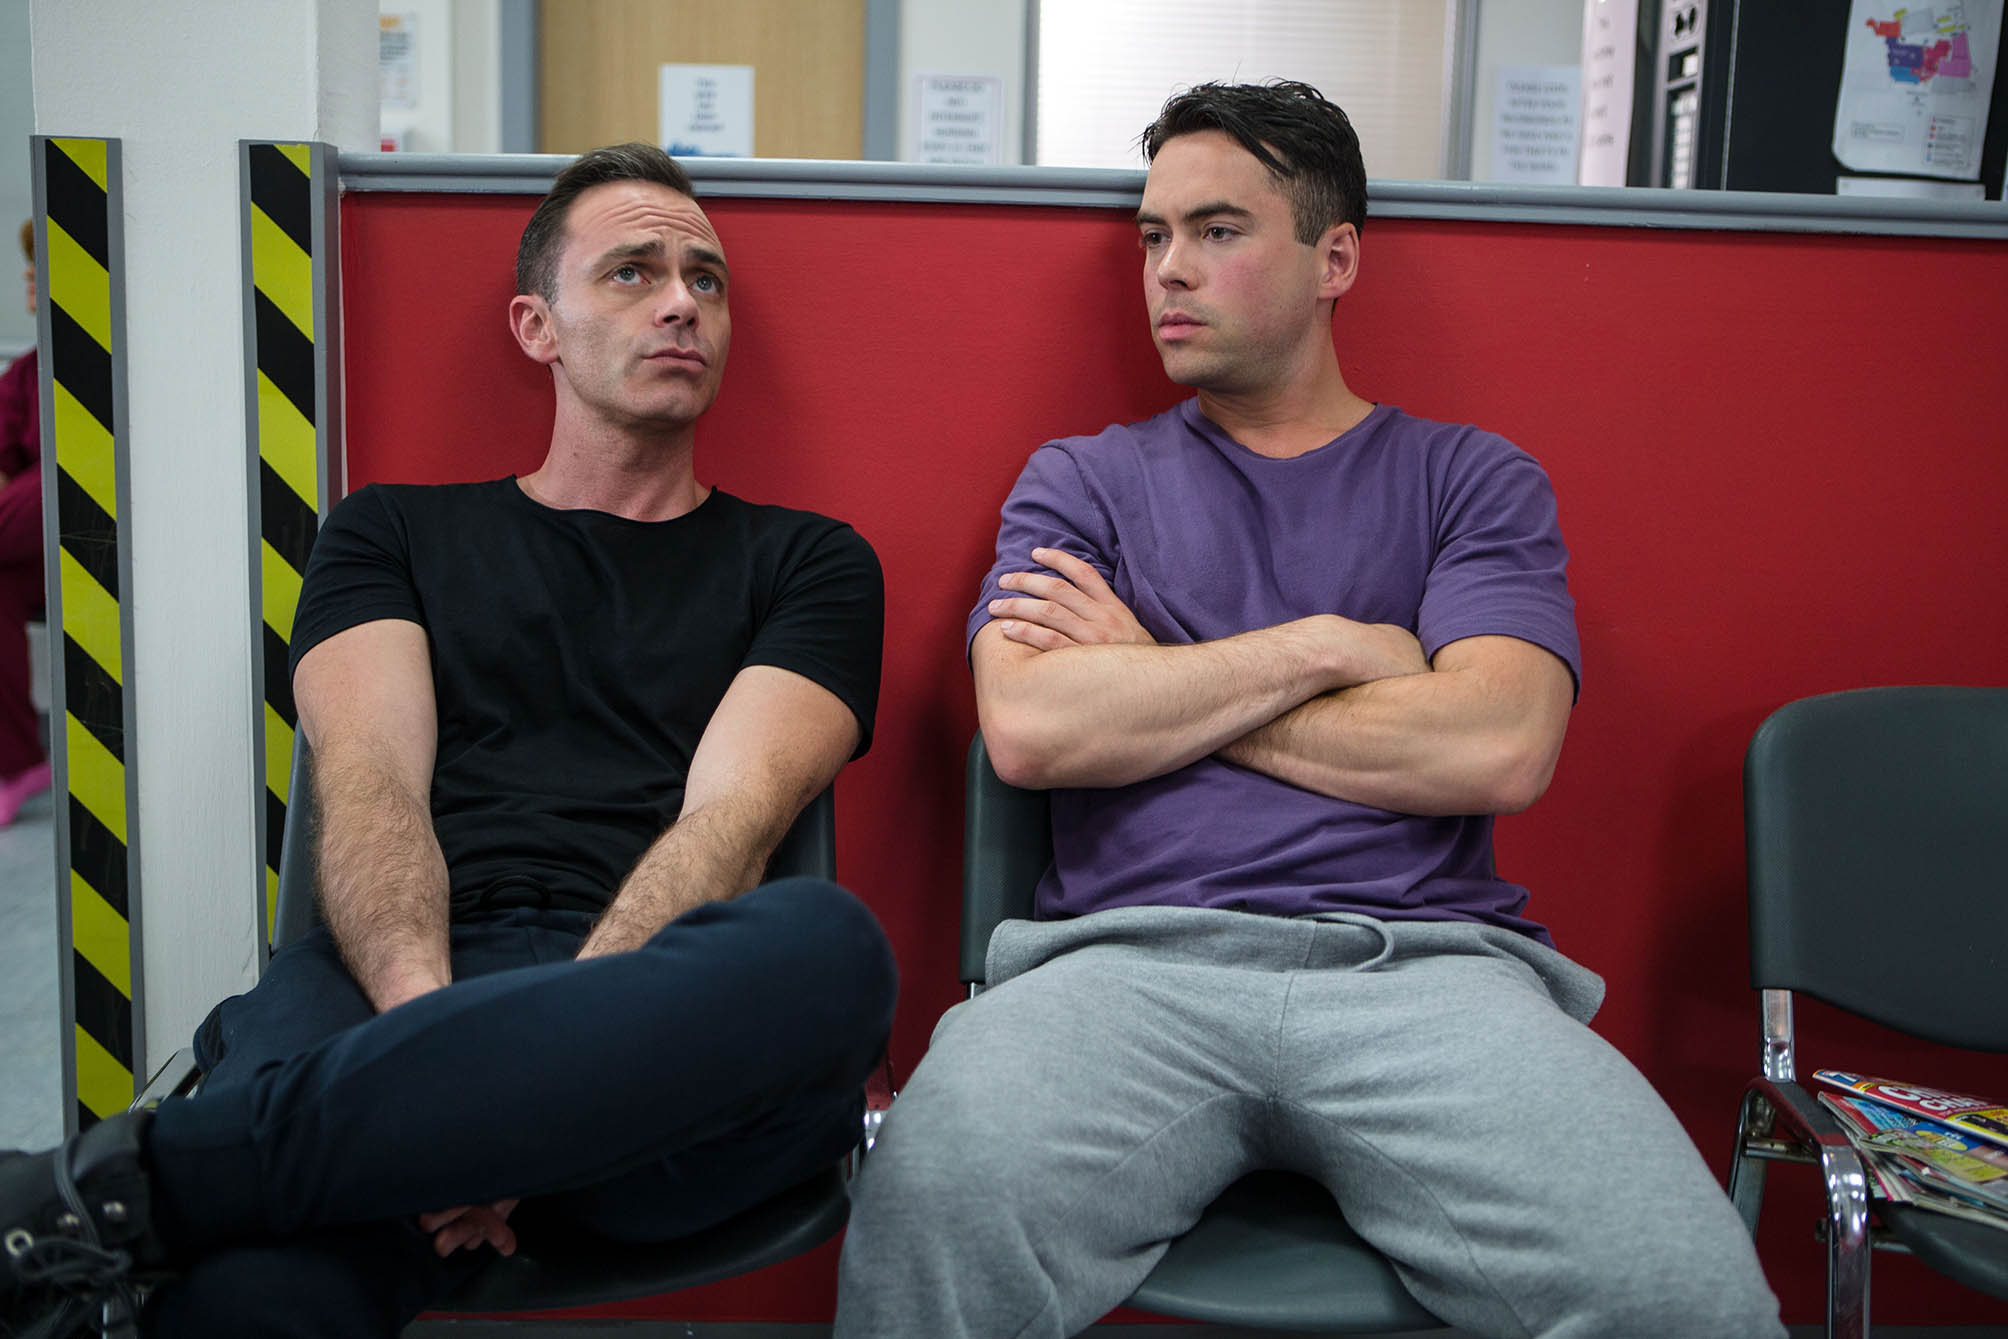 FROM ITV STRICT EMBARGO - NO USE BEFORE TUESDAY 20 SEPTEMBER 2016 Coronation Street - Ep 9001 Thursday 29 September 2016 In a dramatic turn of events which puts Todd and Billy in an A&E waiting room together, Todd Grimshaw BRUNO LANGLEY realises how much he wants Billy Mayhew DANIEL BROCKLEBANK back and decides he needs to do the right thing and pull out of his partnership with Phelan. But can Phelan persuade him otherwise, and will Todd stay strong? Picture contact: david.crook@itv.com on 0161 952 6214 Photographer - Mark Bruce This photograph is (C) ITV Plc and can only be reproduced for editorial purposes directly in connection with the programme or event mentioned above, or ITV plc. Once made available by ITV plc Picture Desk, this photograph can be reproduced once only up until the transmission TX date and no reproduction fee will be charged. Any subsequent usage may incur a fee. This photograph must not be manipulated excluding basic cropping in a manner which alters the visual appearance of the person photographed deemed detrimental or inappropriate by ITV plc Picture Desk. This photograph must not be syndicated to any other company, publication or website, or permanently archived, without the express written permission of ITV Plc Picture Desk. Full Terms and conditions are available on the website www.itvpictures.com